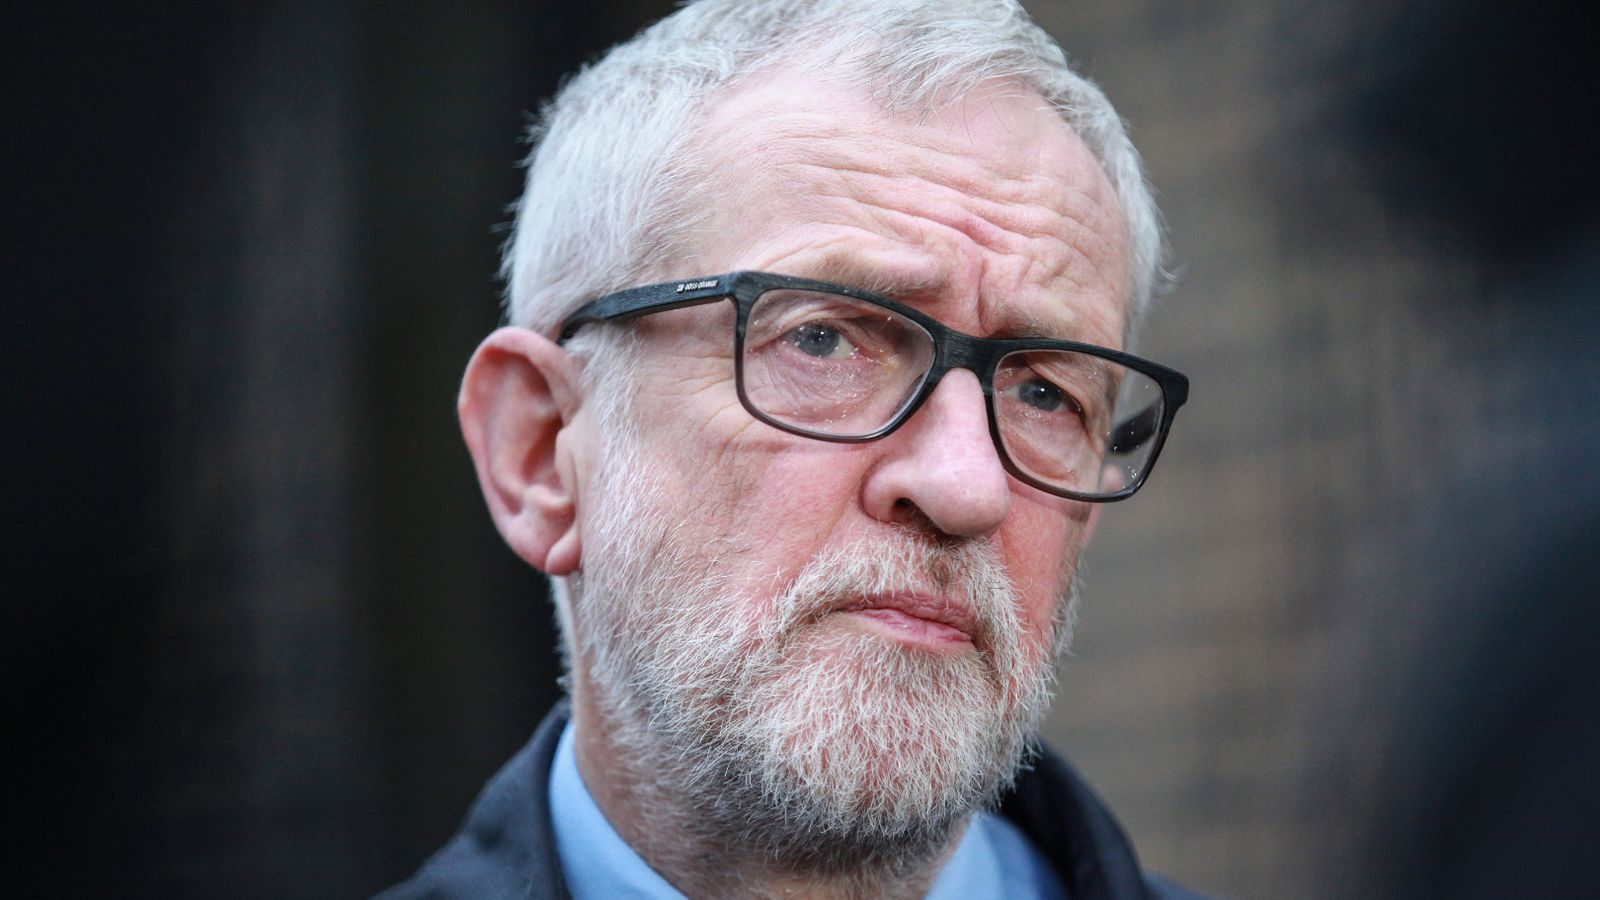 Jeremy Corbyn: 'Legal fund' launched for former Labour leader as he faces prospect of being sued